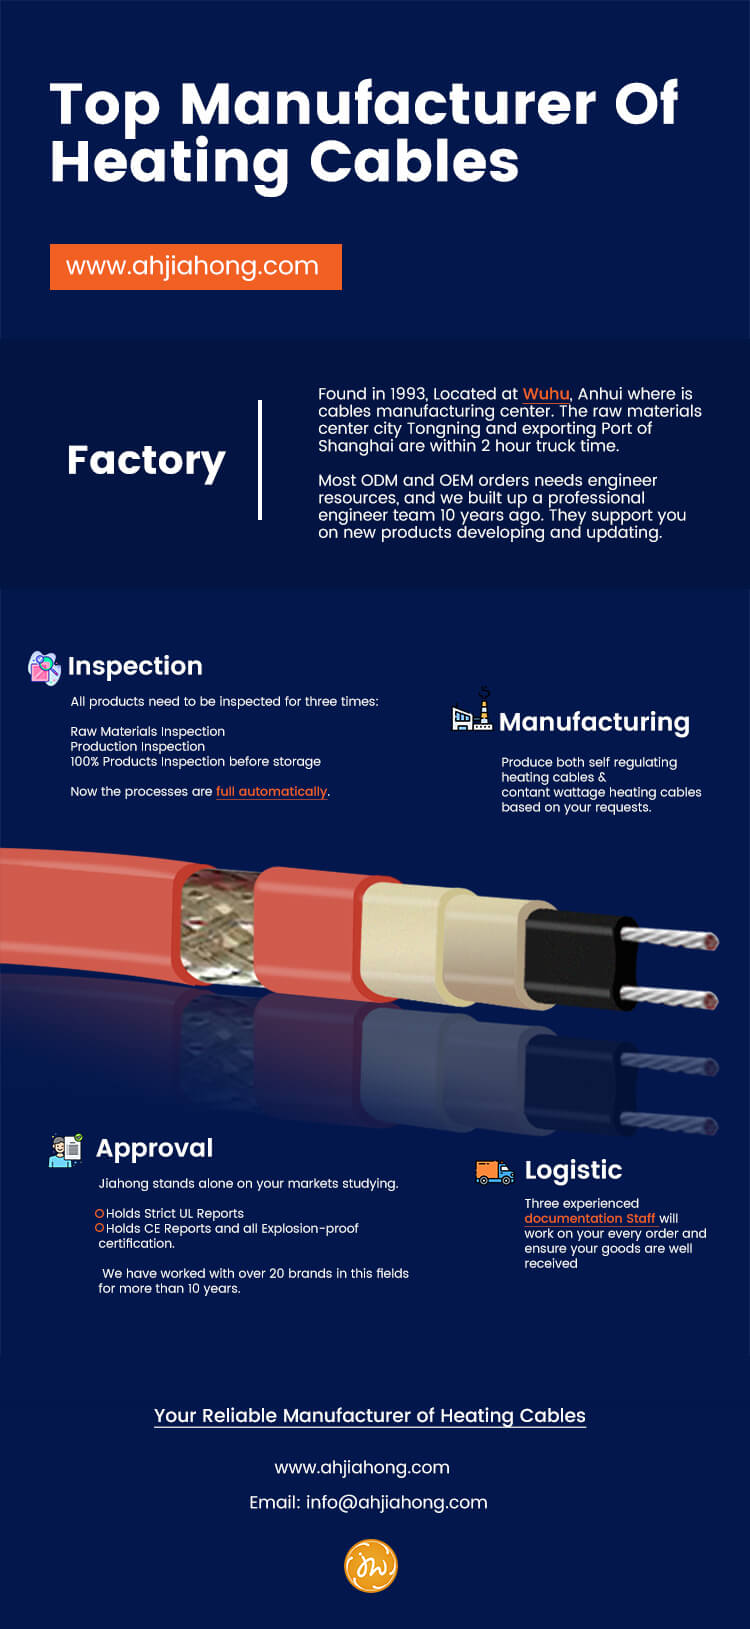 Top manufacturer of heating cables